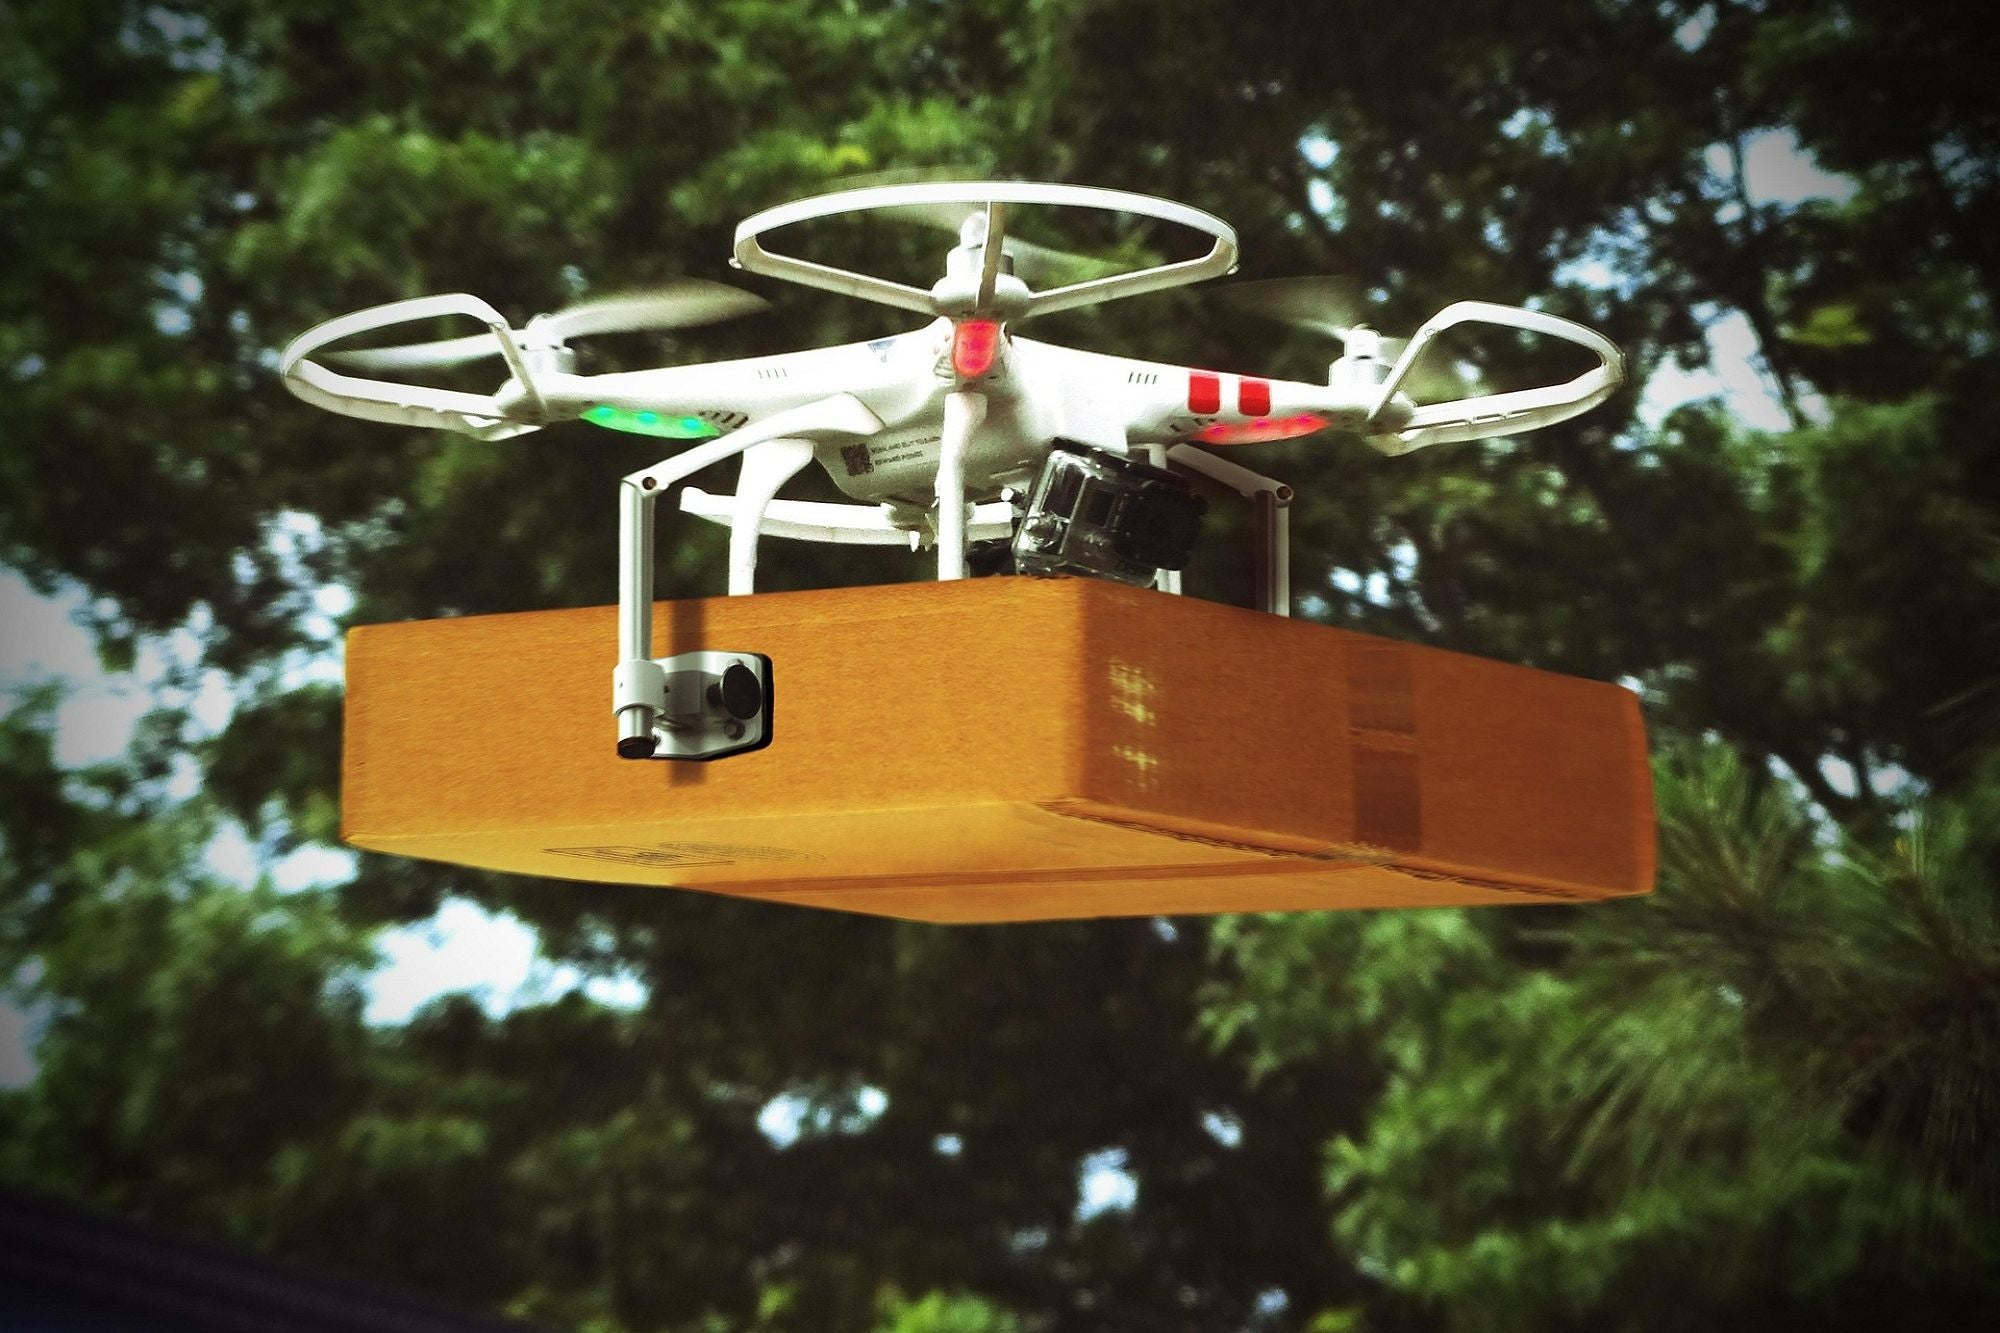 Will The Concept of Drone-based Delivery Work In India?